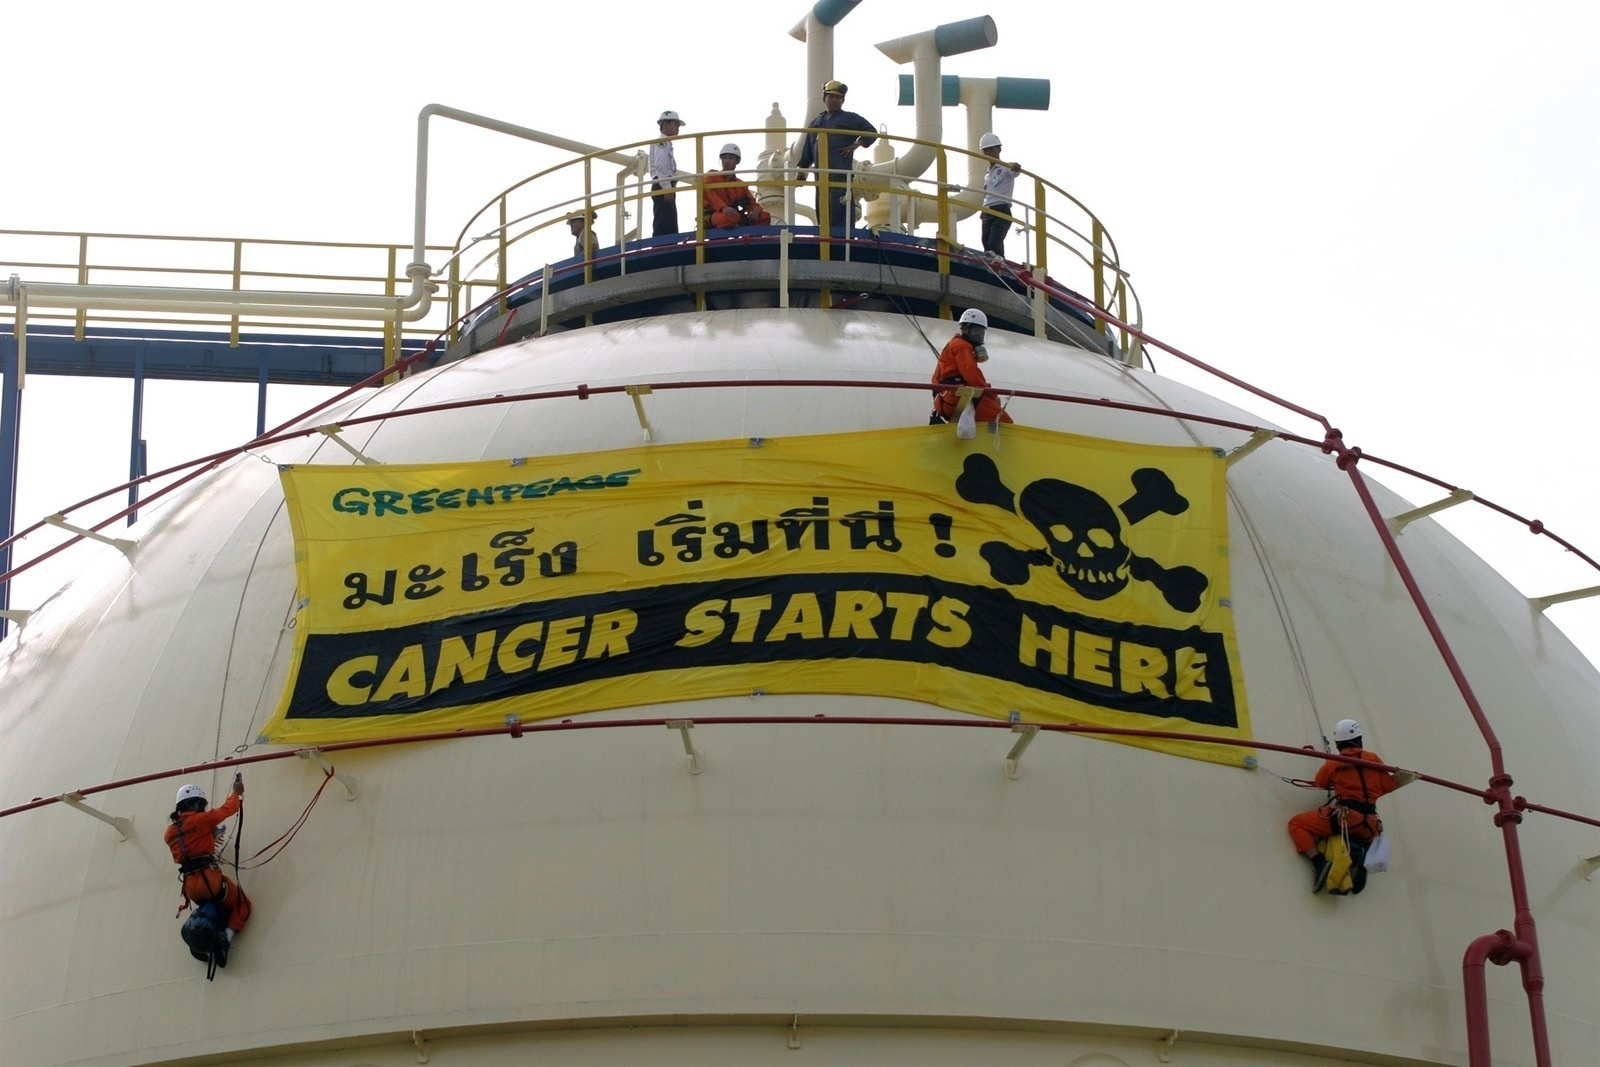 "Activists from the environmental group Greenpeace staging a protest at a processing and storage facility owned by the Thai Plastic and Chemicals Plc (TPC), which contains the highly toxic and carcinogenic chemical Vinyl Chloride Monomer (VCM). The activists climbed onto a storage tank to hang a banner ""Cancer Starts Here"".   Greenpeace is demanding that TPC's factory operations be shut down after finding evidence that wastewater containing a chemical that can cause cancer and pose threats to the environment are being discharged by the company into the Chao Phraya River."